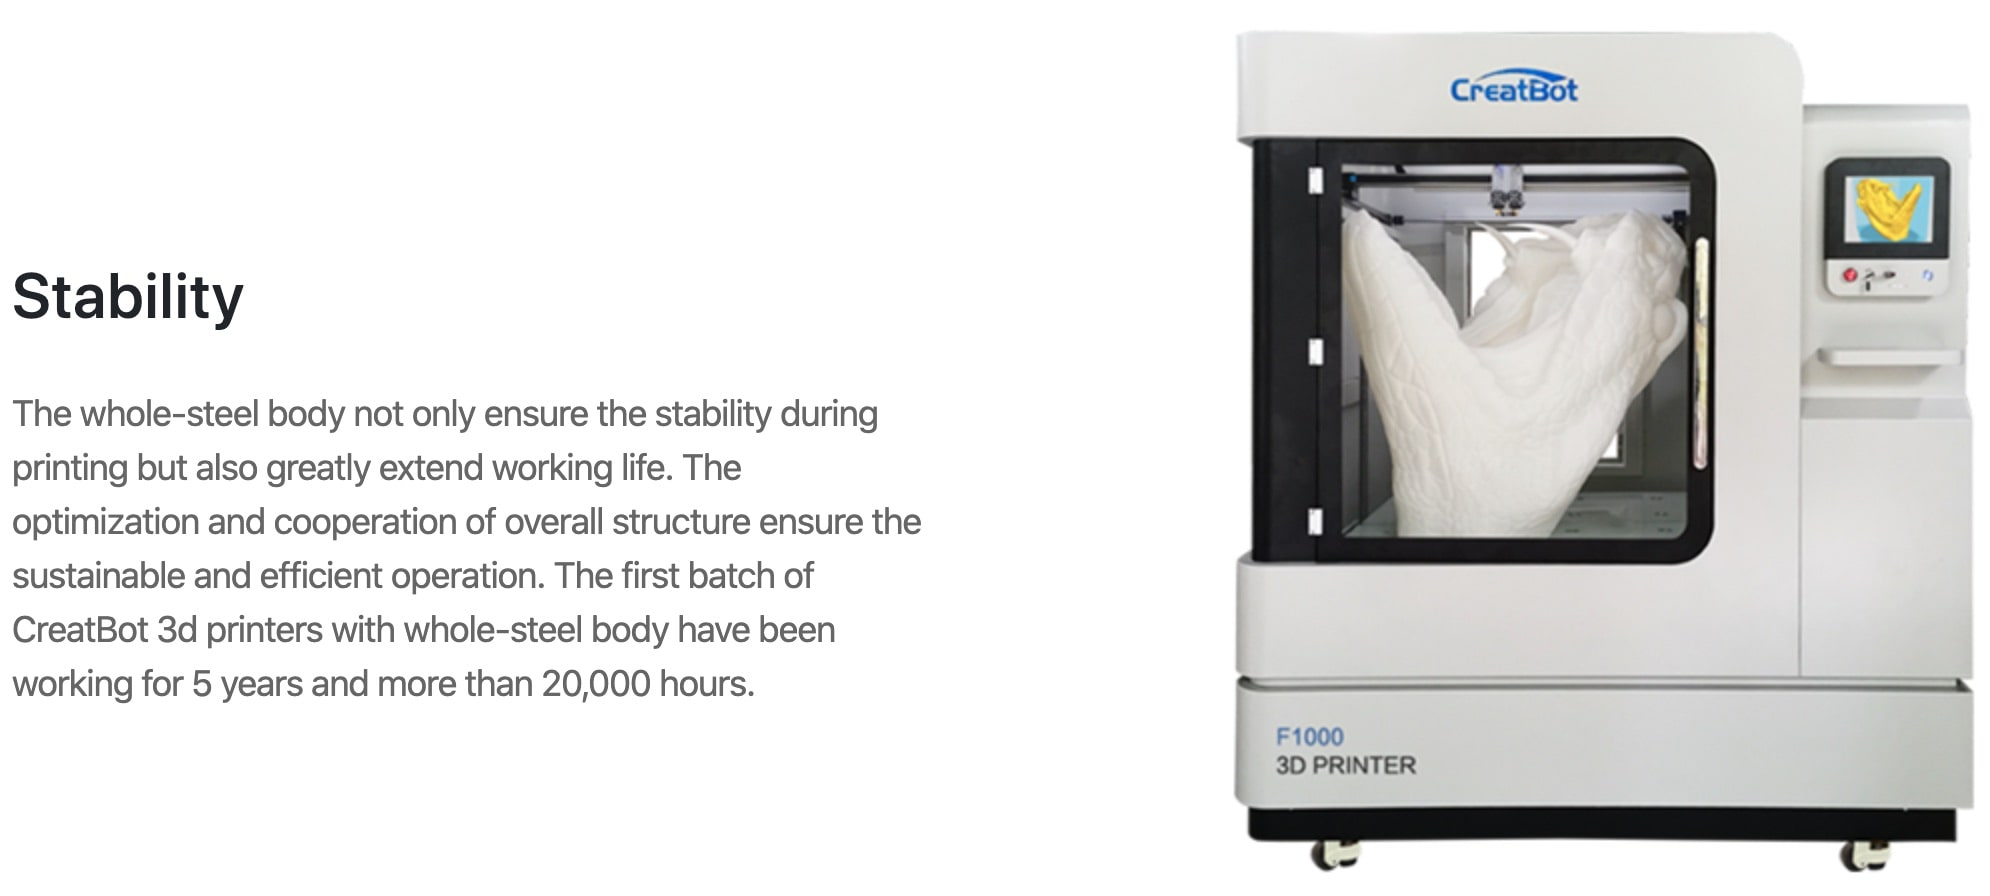 CreatBot F1000 3D Printer Description Features 5